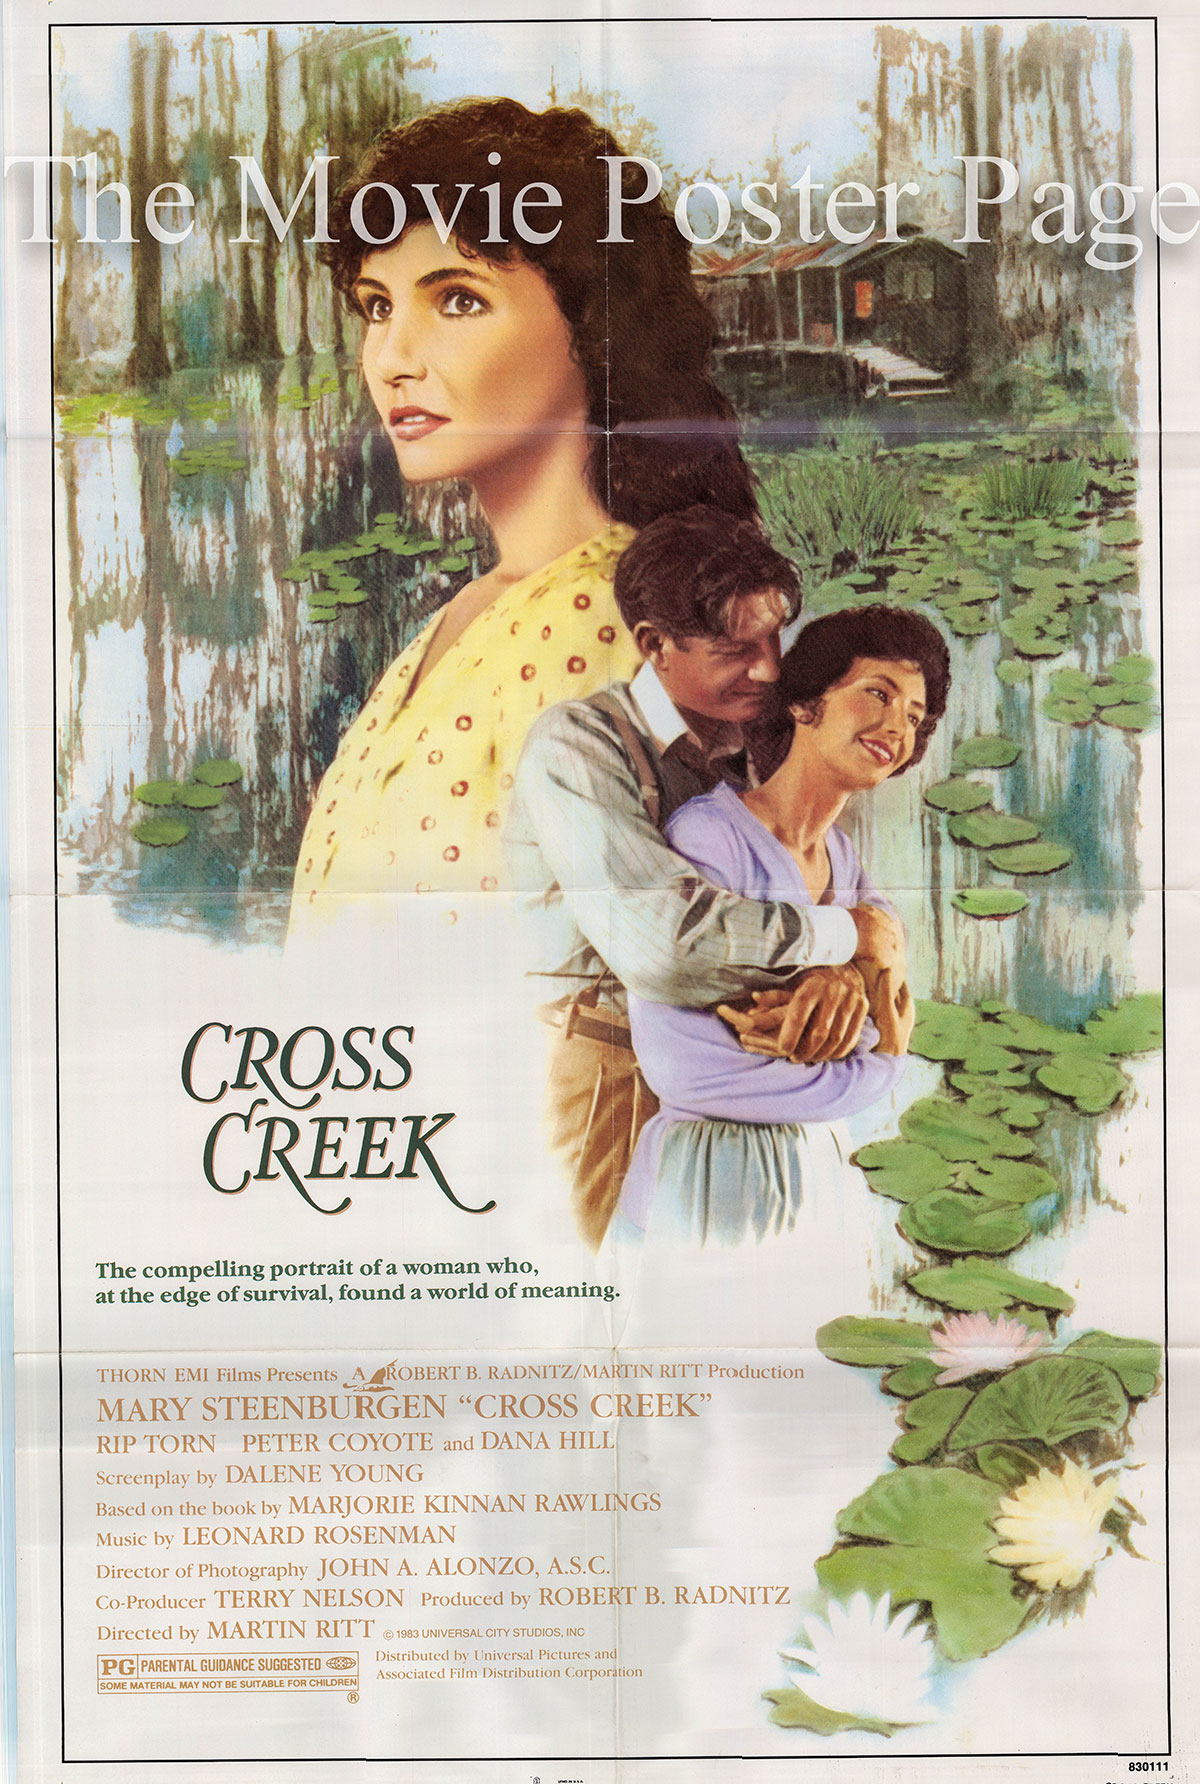 Pictured is a US promotional one-sheet poster for the 1983 Martin Ritt film Cross Creek starring Mary Steenbergen.